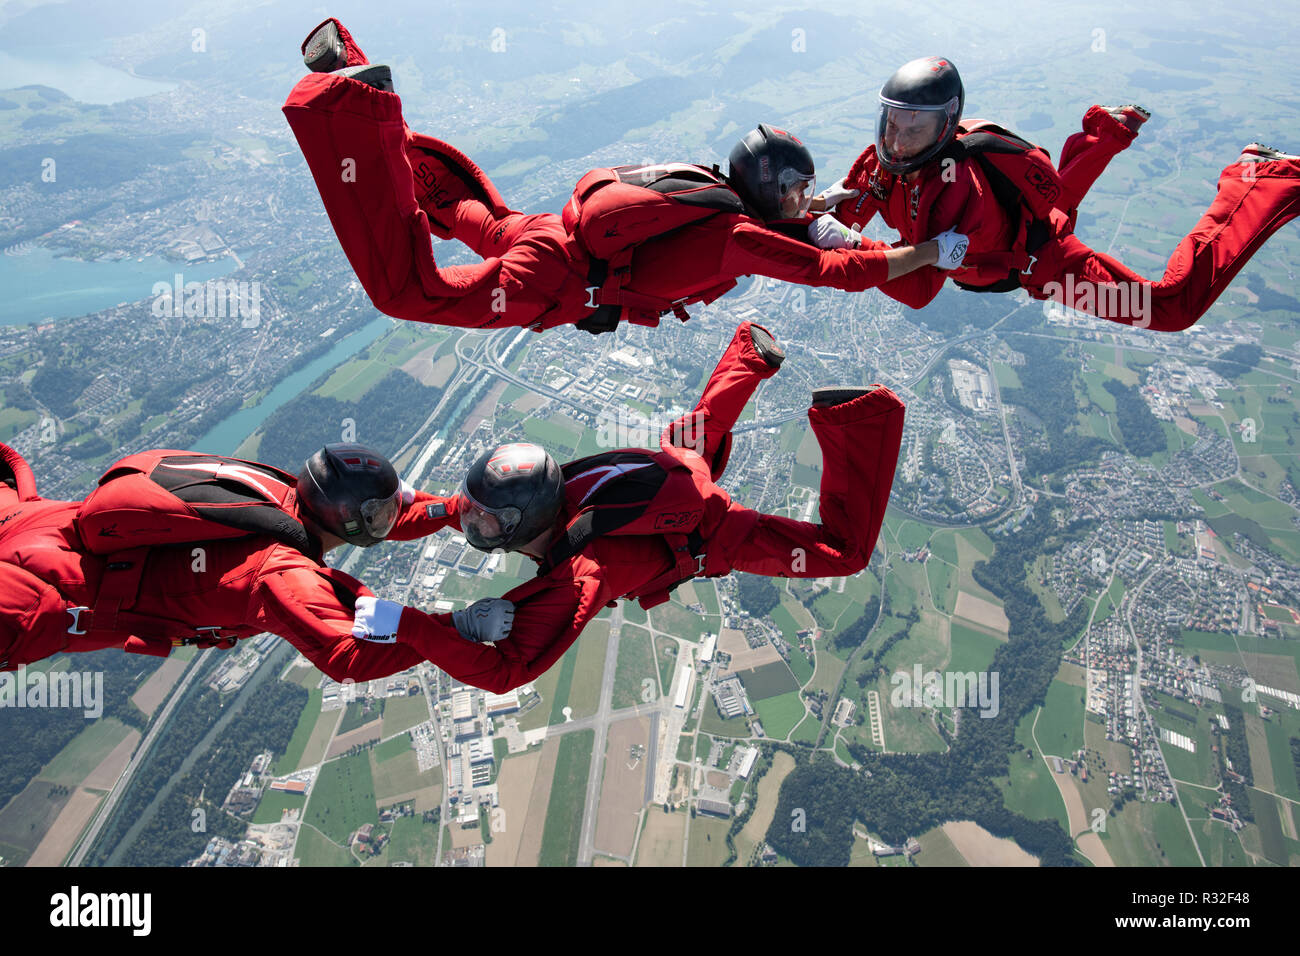 Skydiving team on a training jump Stock Photo: 225634536 - Alamy